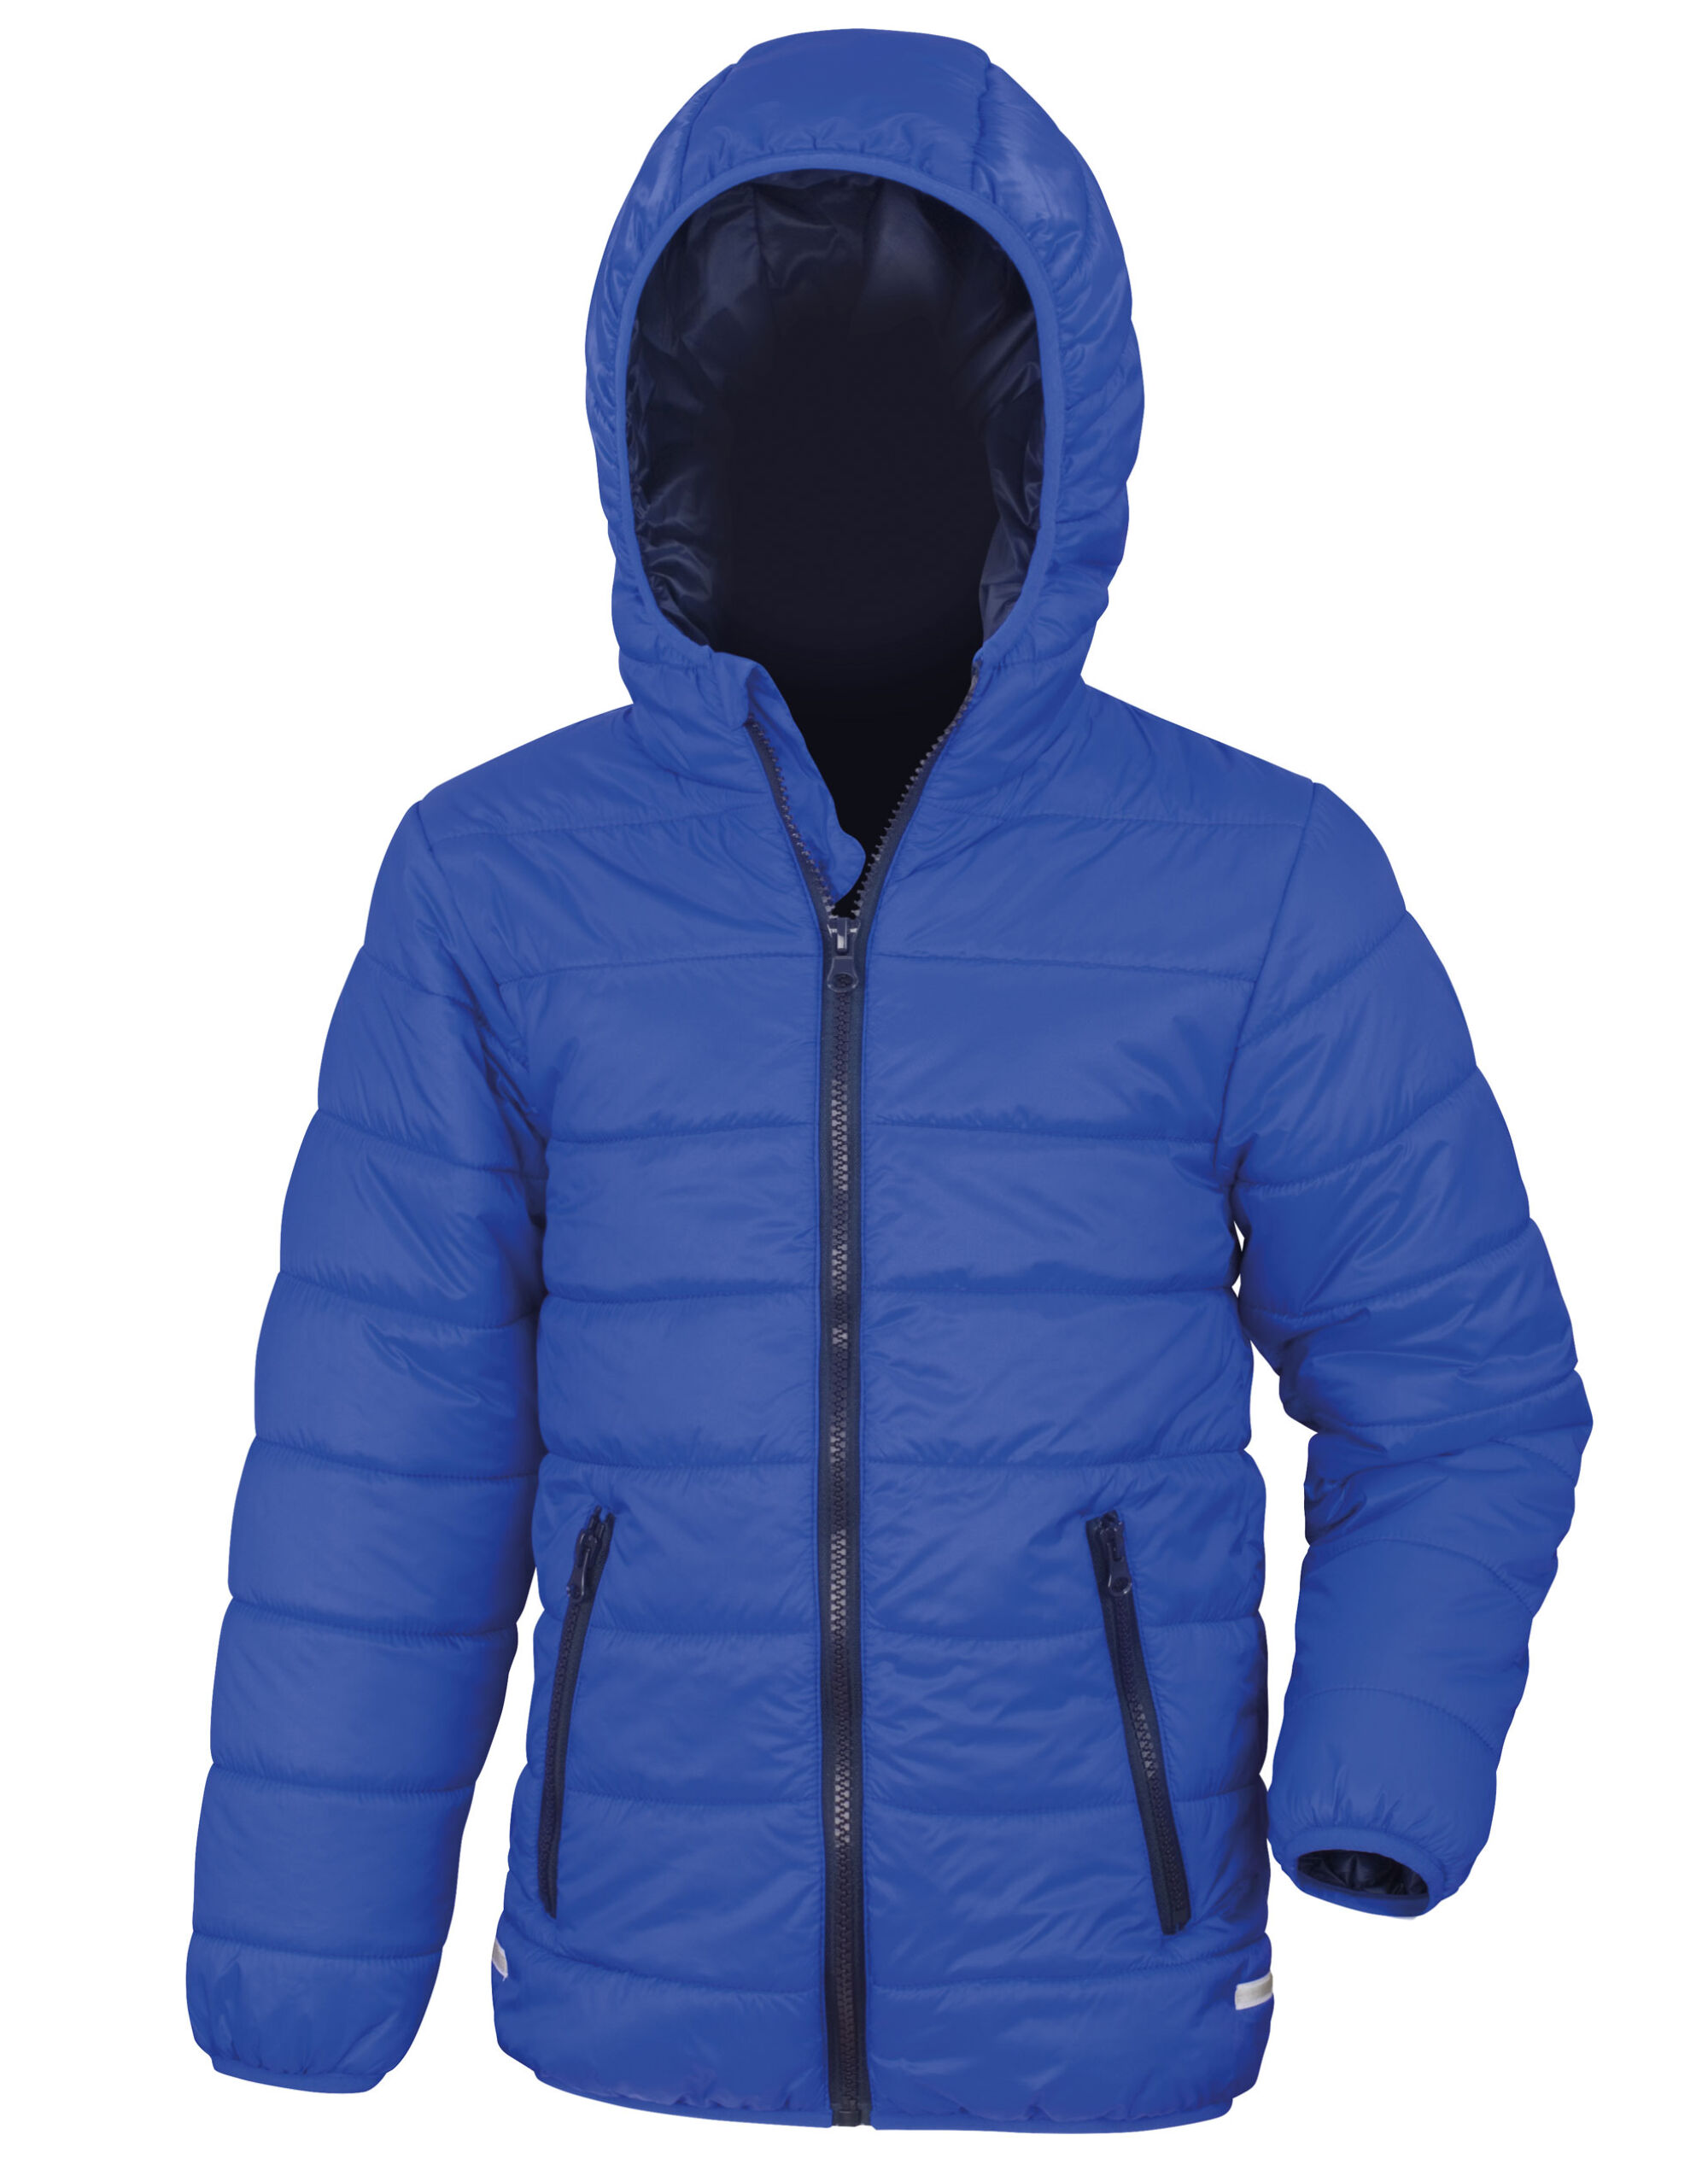 Childs Padded Jacket